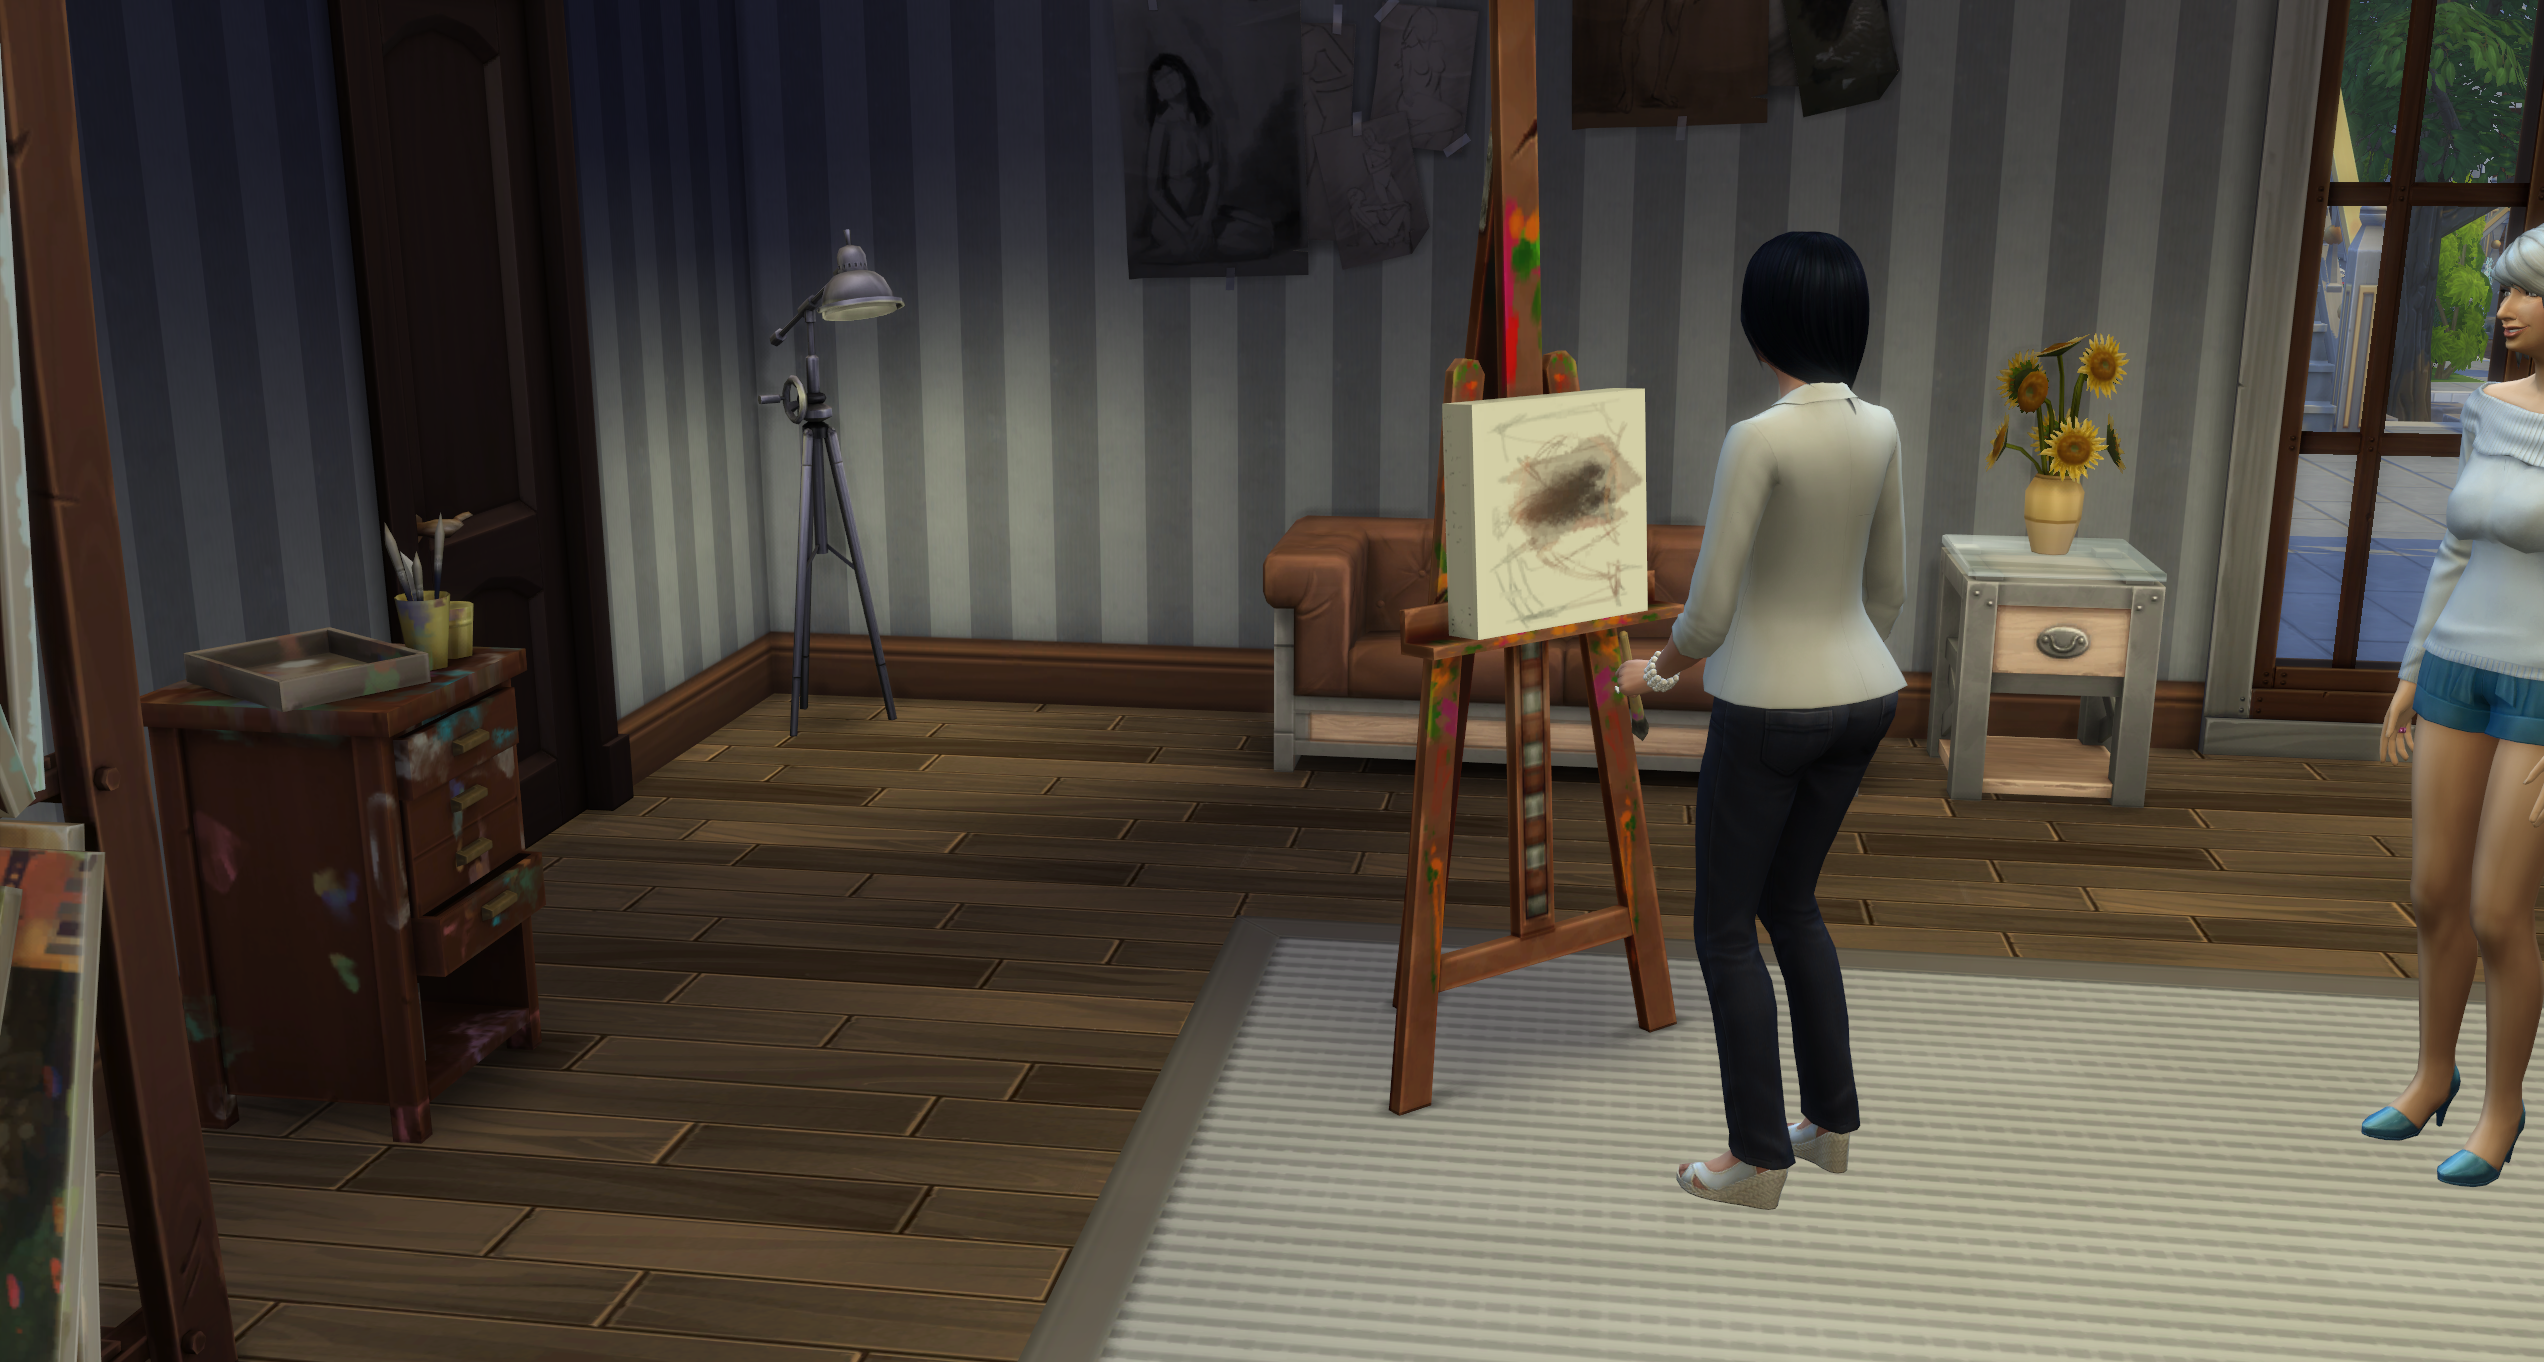 how to build in sims 4 without money